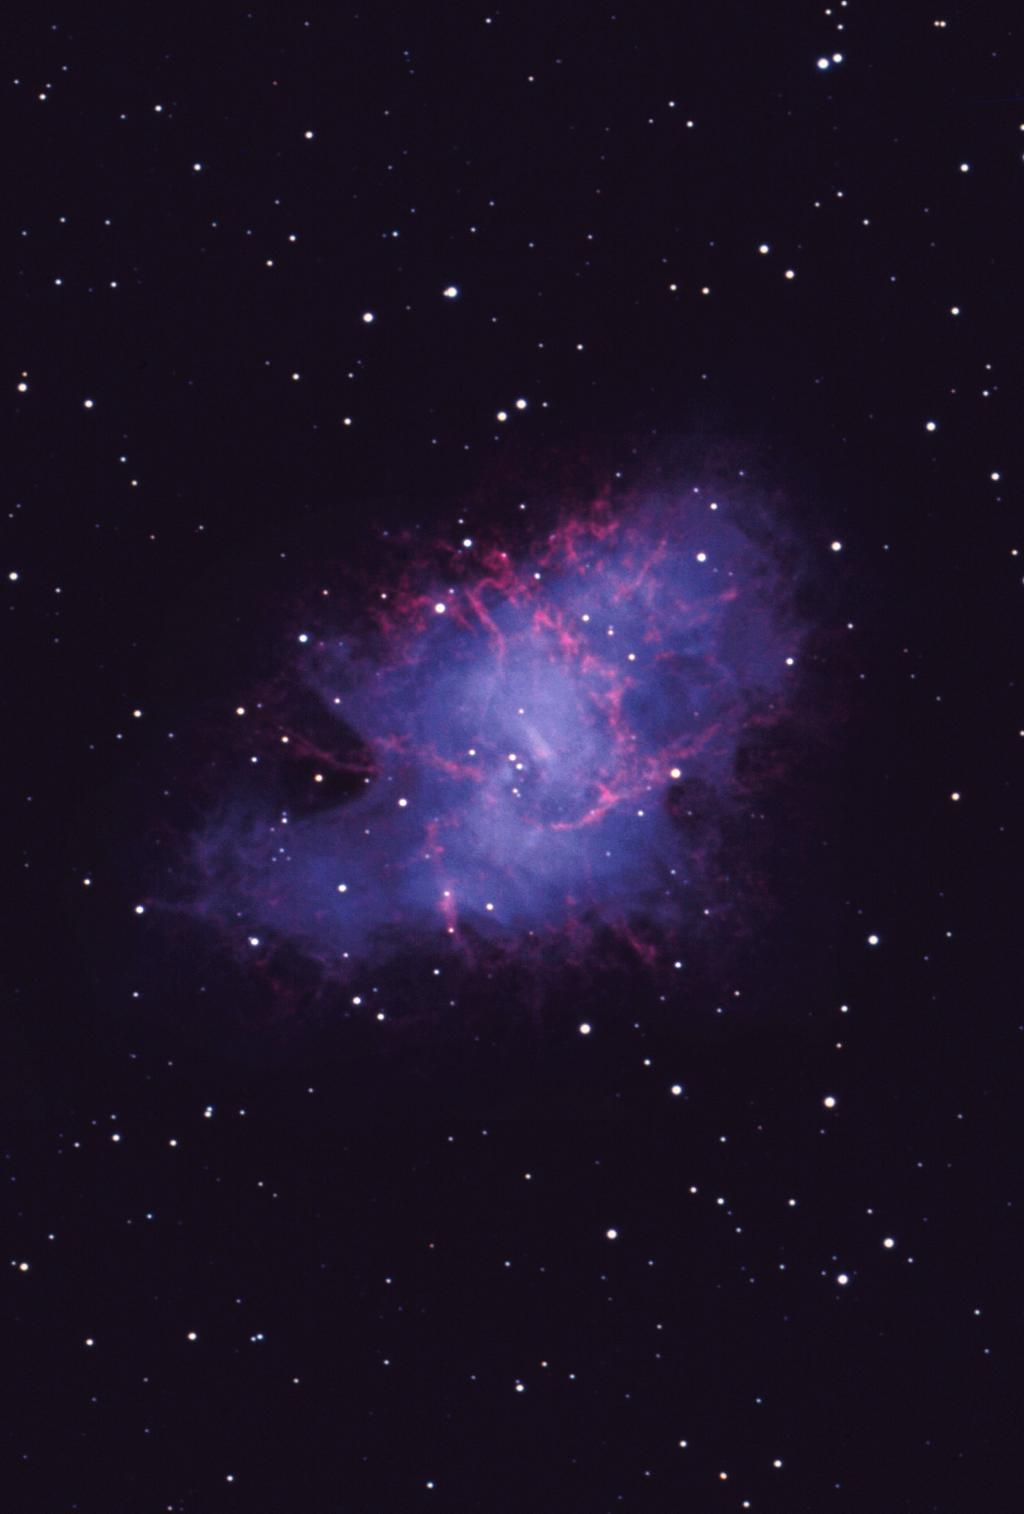 AURA/NOAO Images of Messier Objects